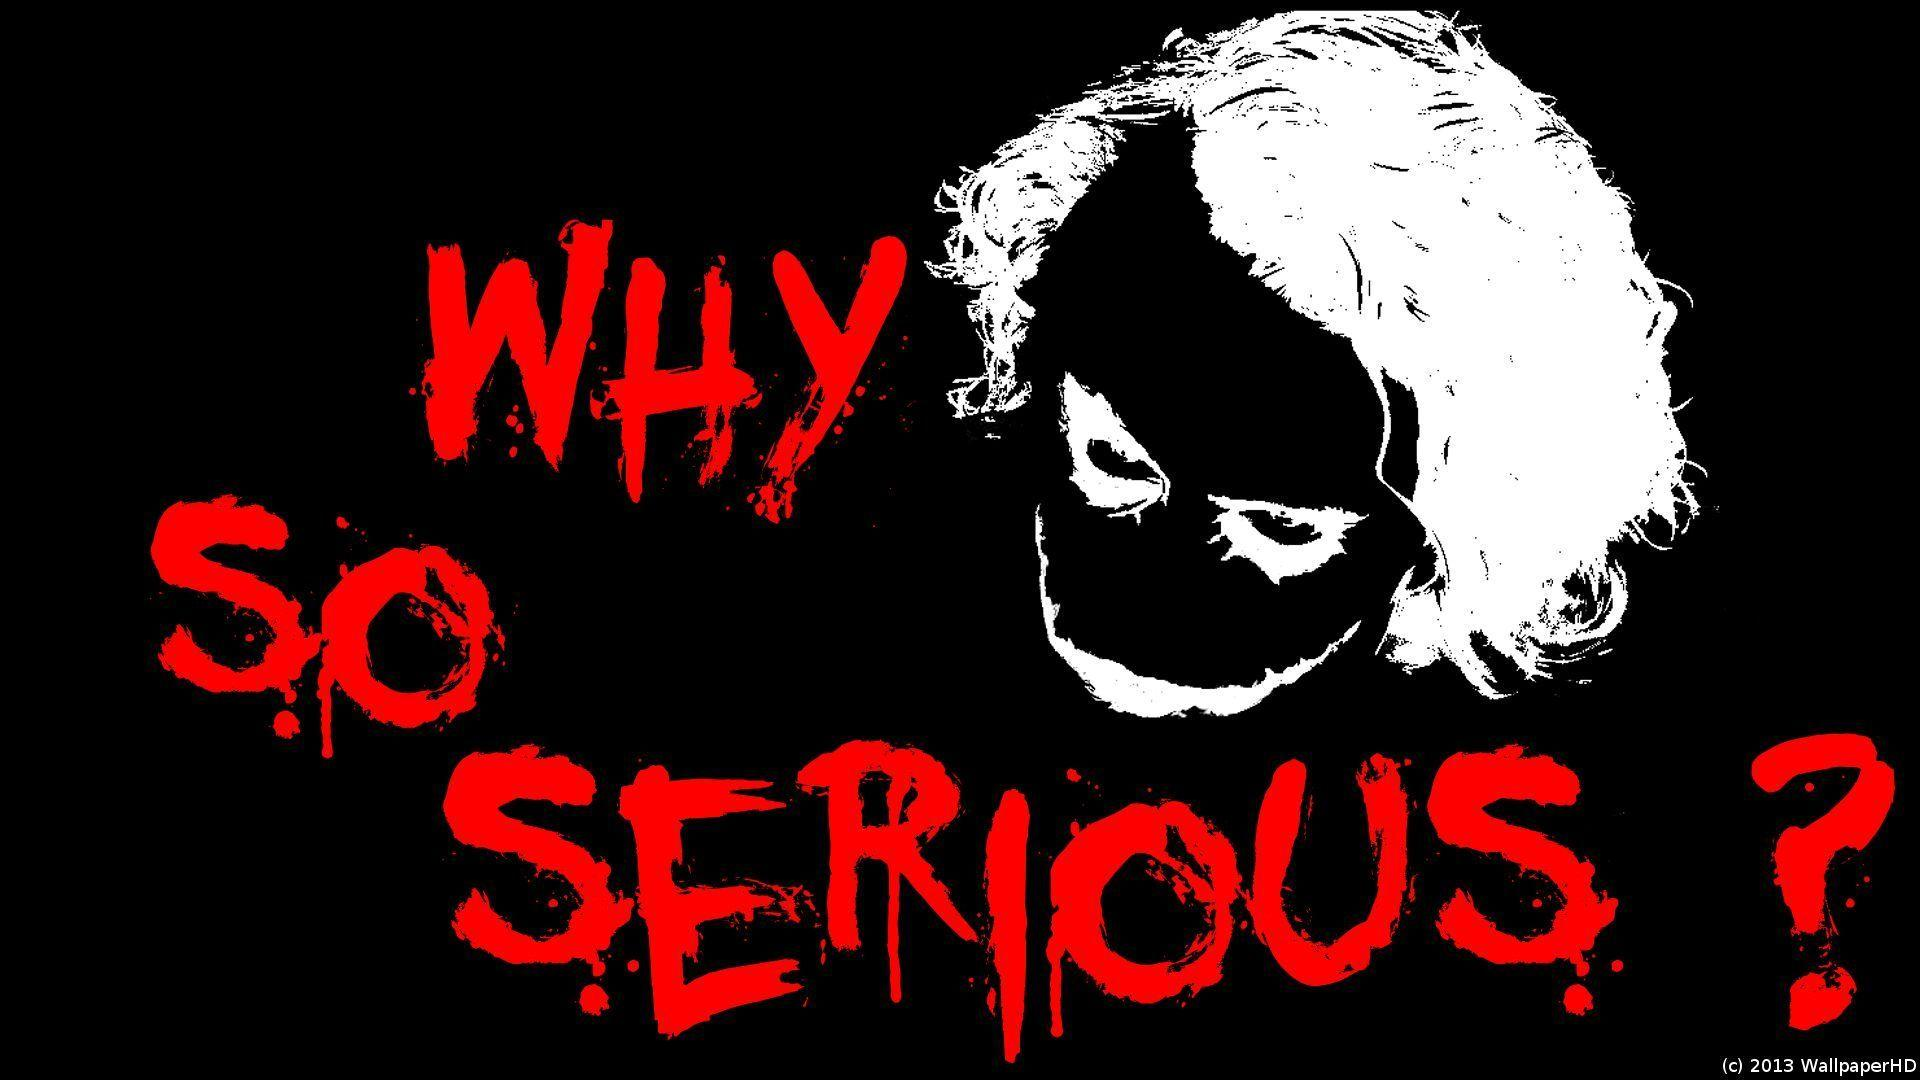 Why So Serious Joker Wallpaper By WallpaperHD On